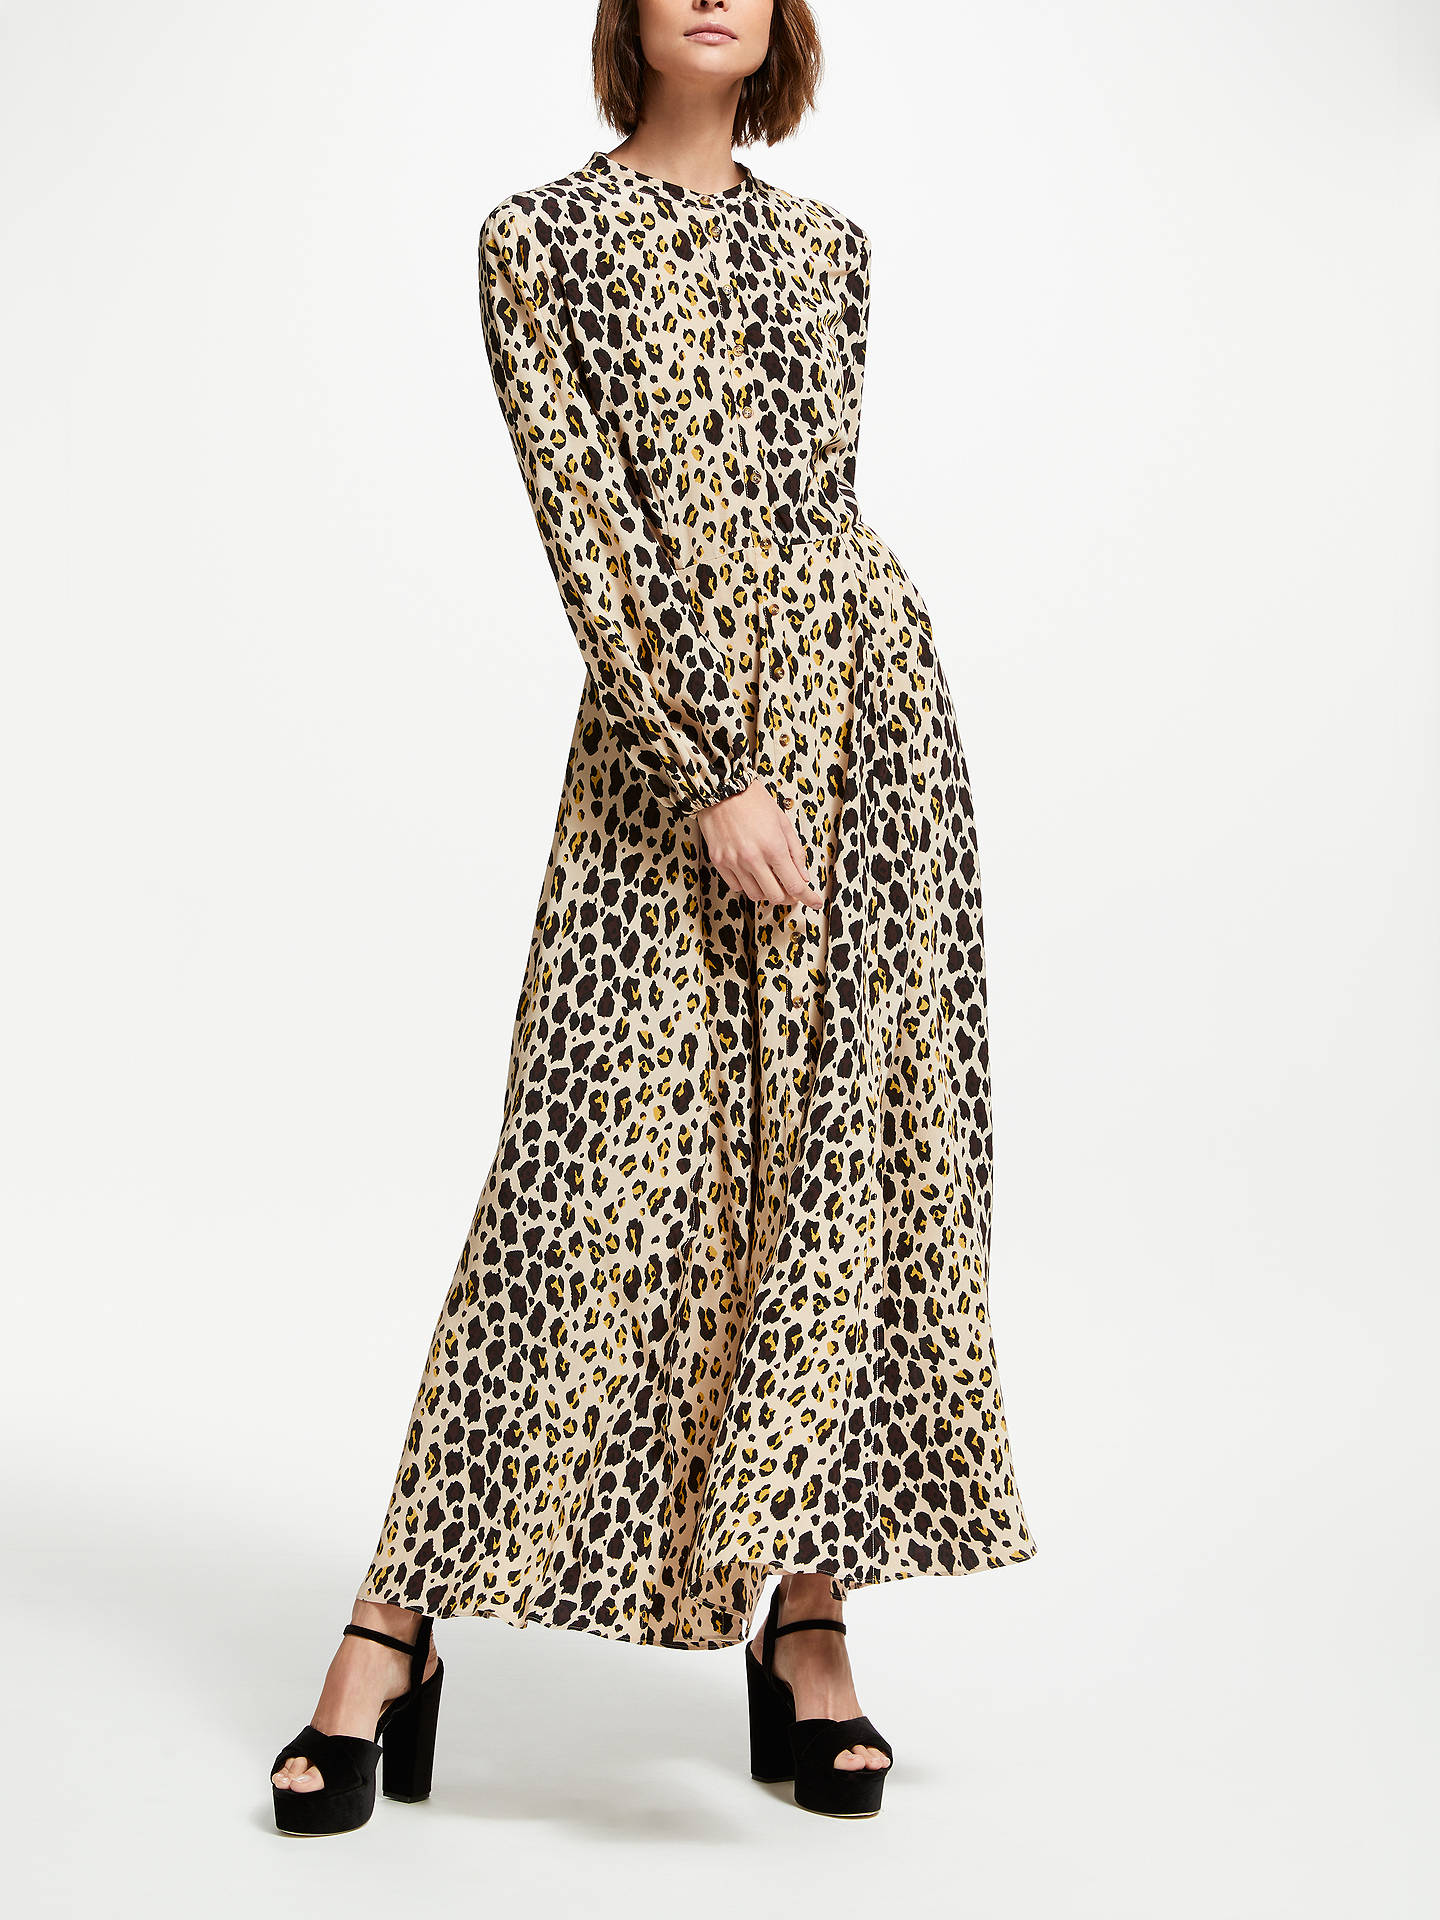 35dbaa9f85b Buy Somerset by Alice Temperley Leopard Print Maxi Dress